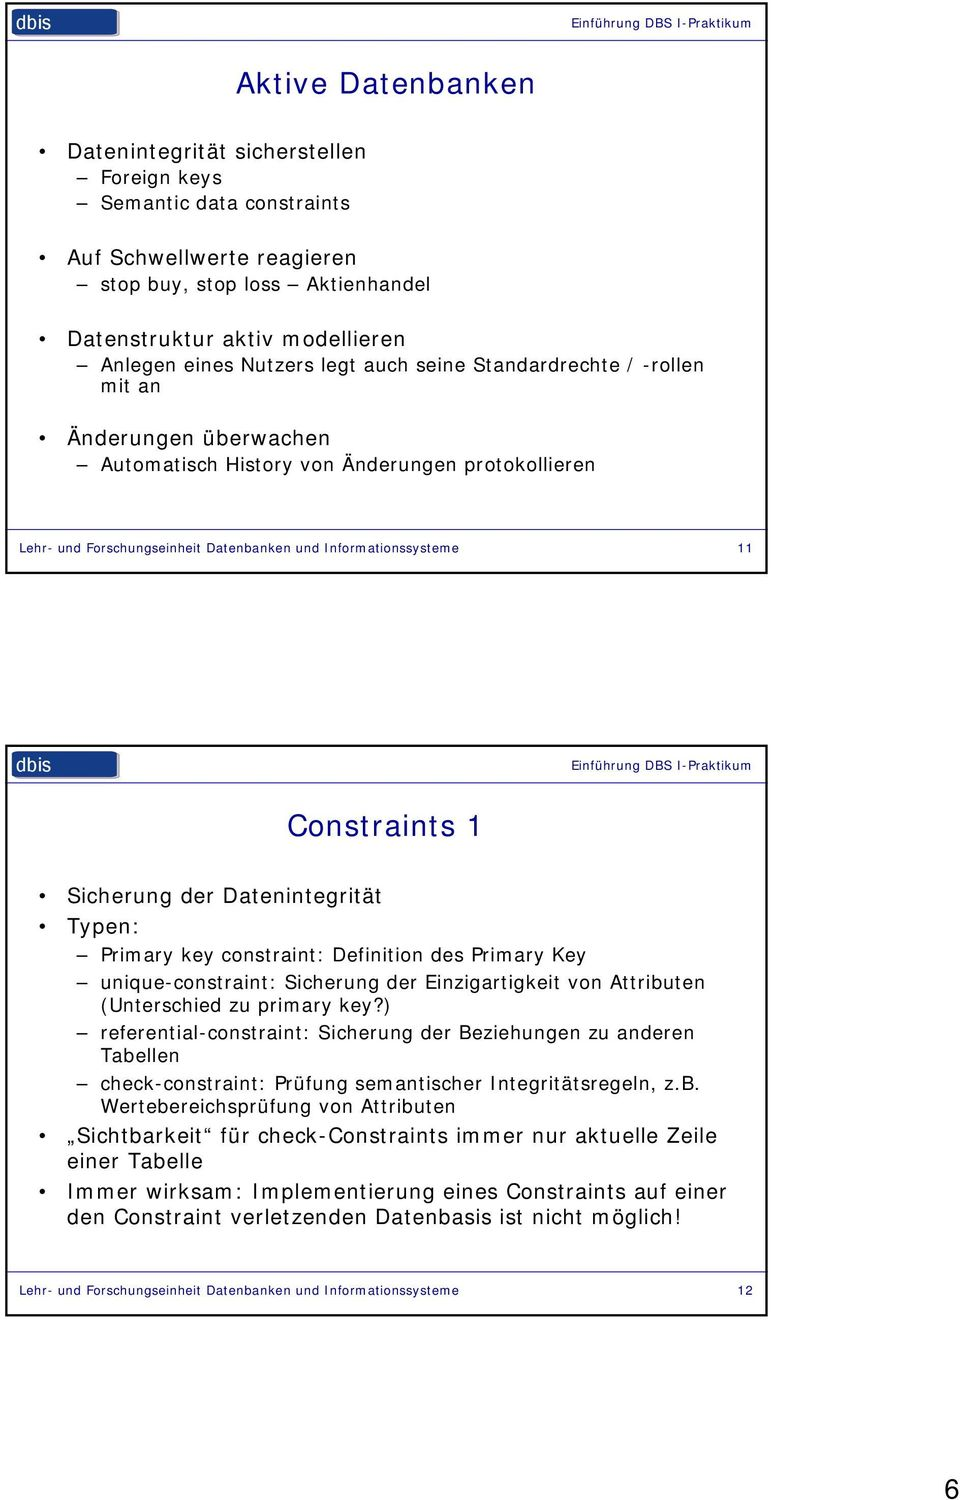 Constraints 1 Sicherung der Datenintegrität Typen: Primary key constraint: Definition des Primary Key unique-constraint: Sicherung der Einzigartigkeit von Attributen (Unterschied zu primary key?